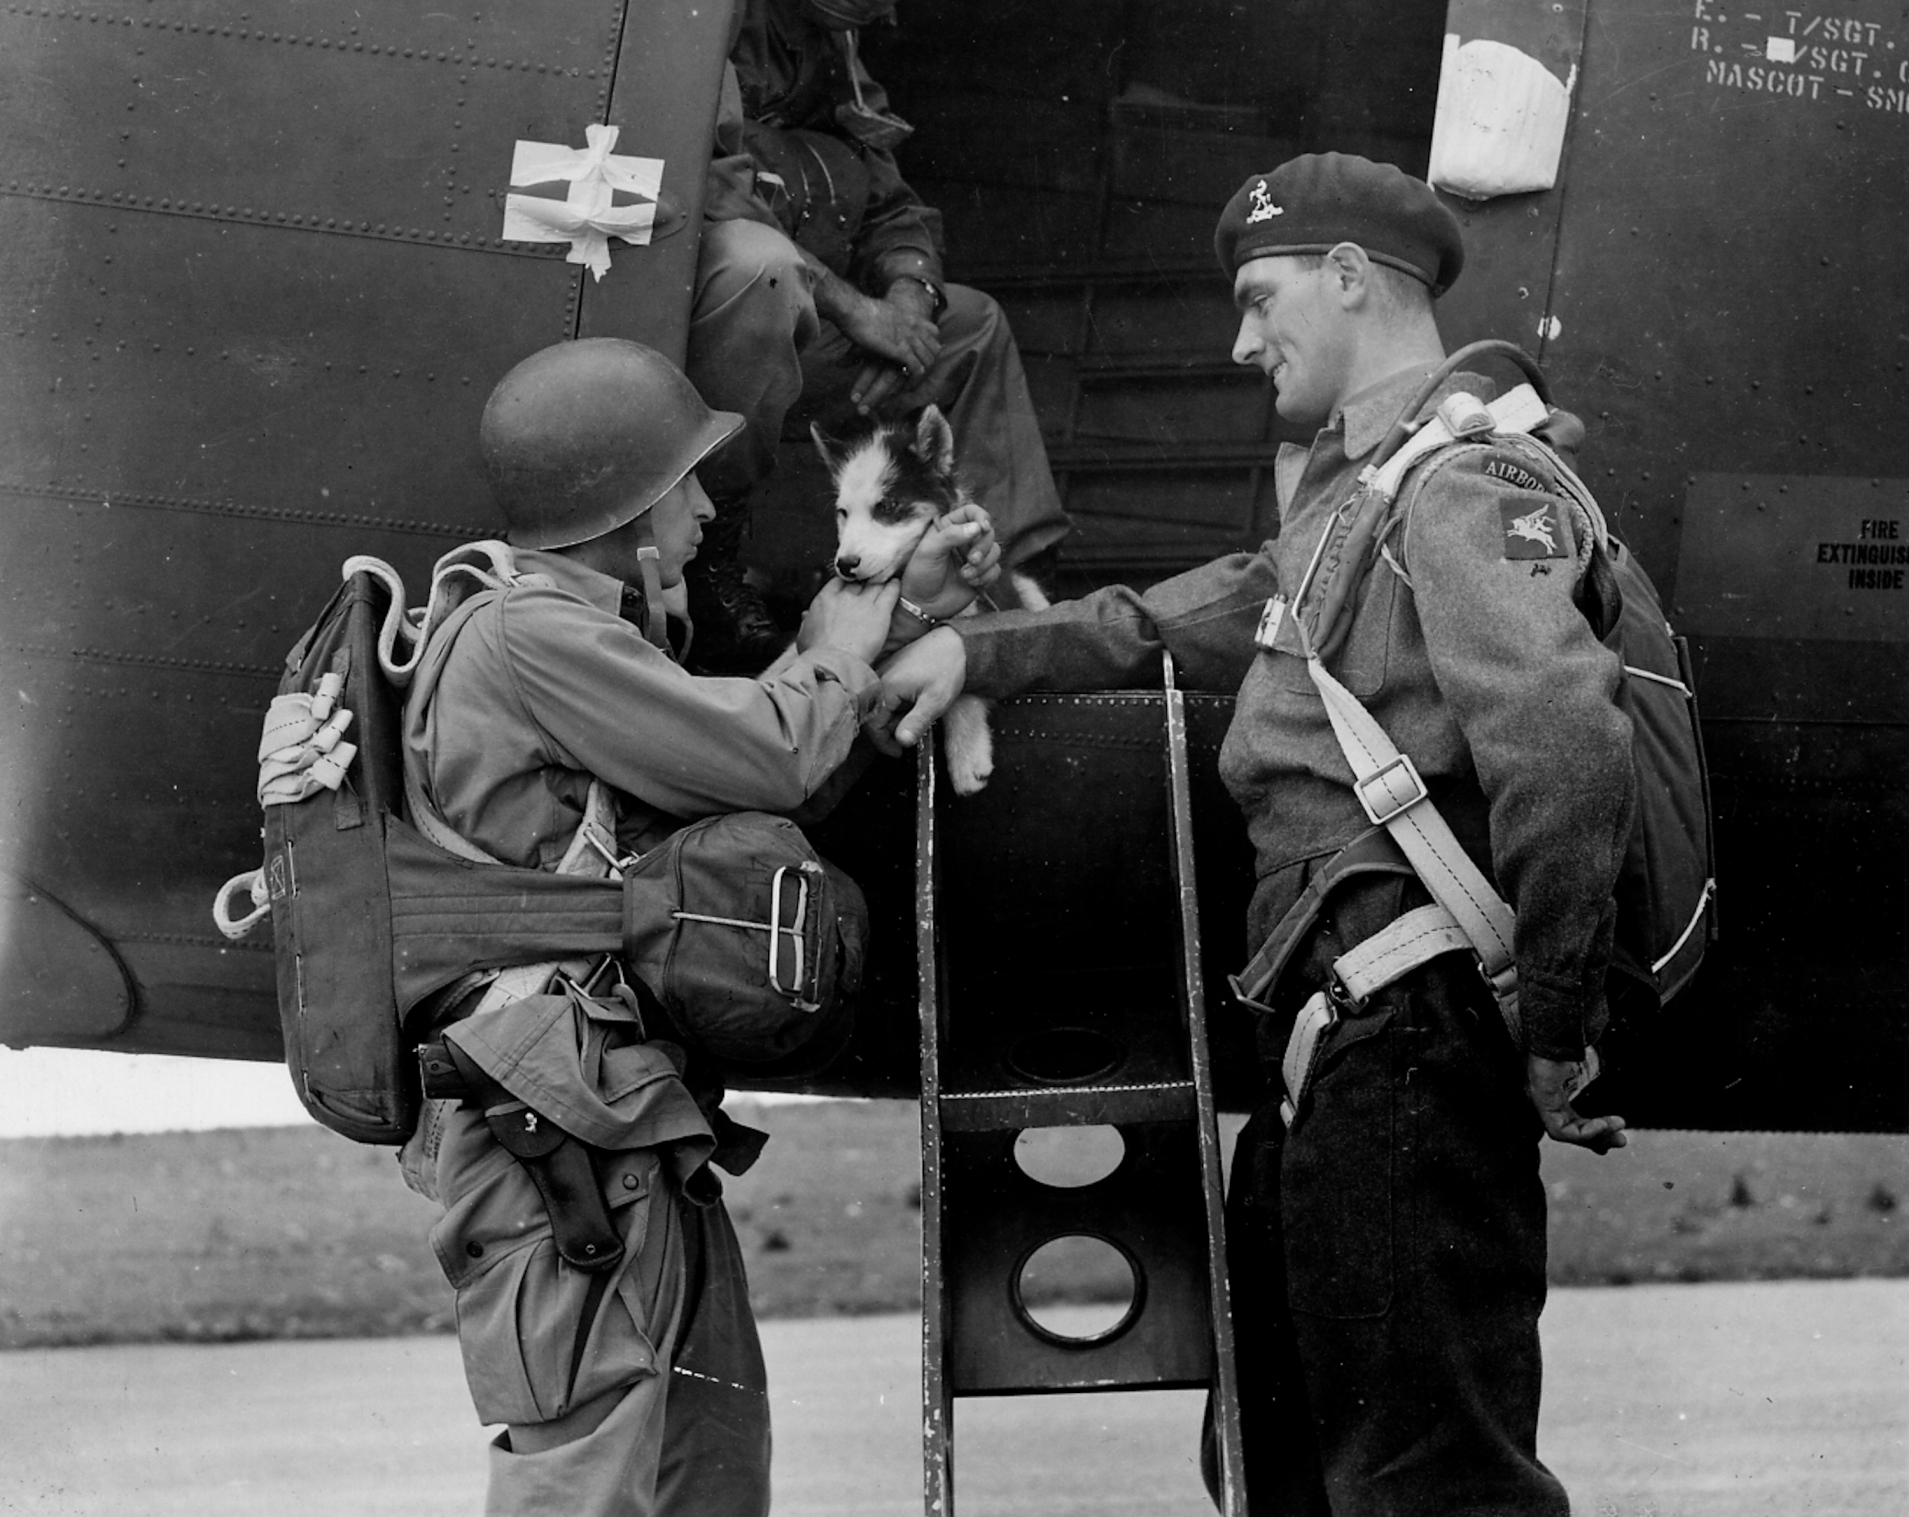 British Series WWII British Paratrooper with US Airborne Officer and Dog Mascot DDay Drop 060544 (1 of 1)